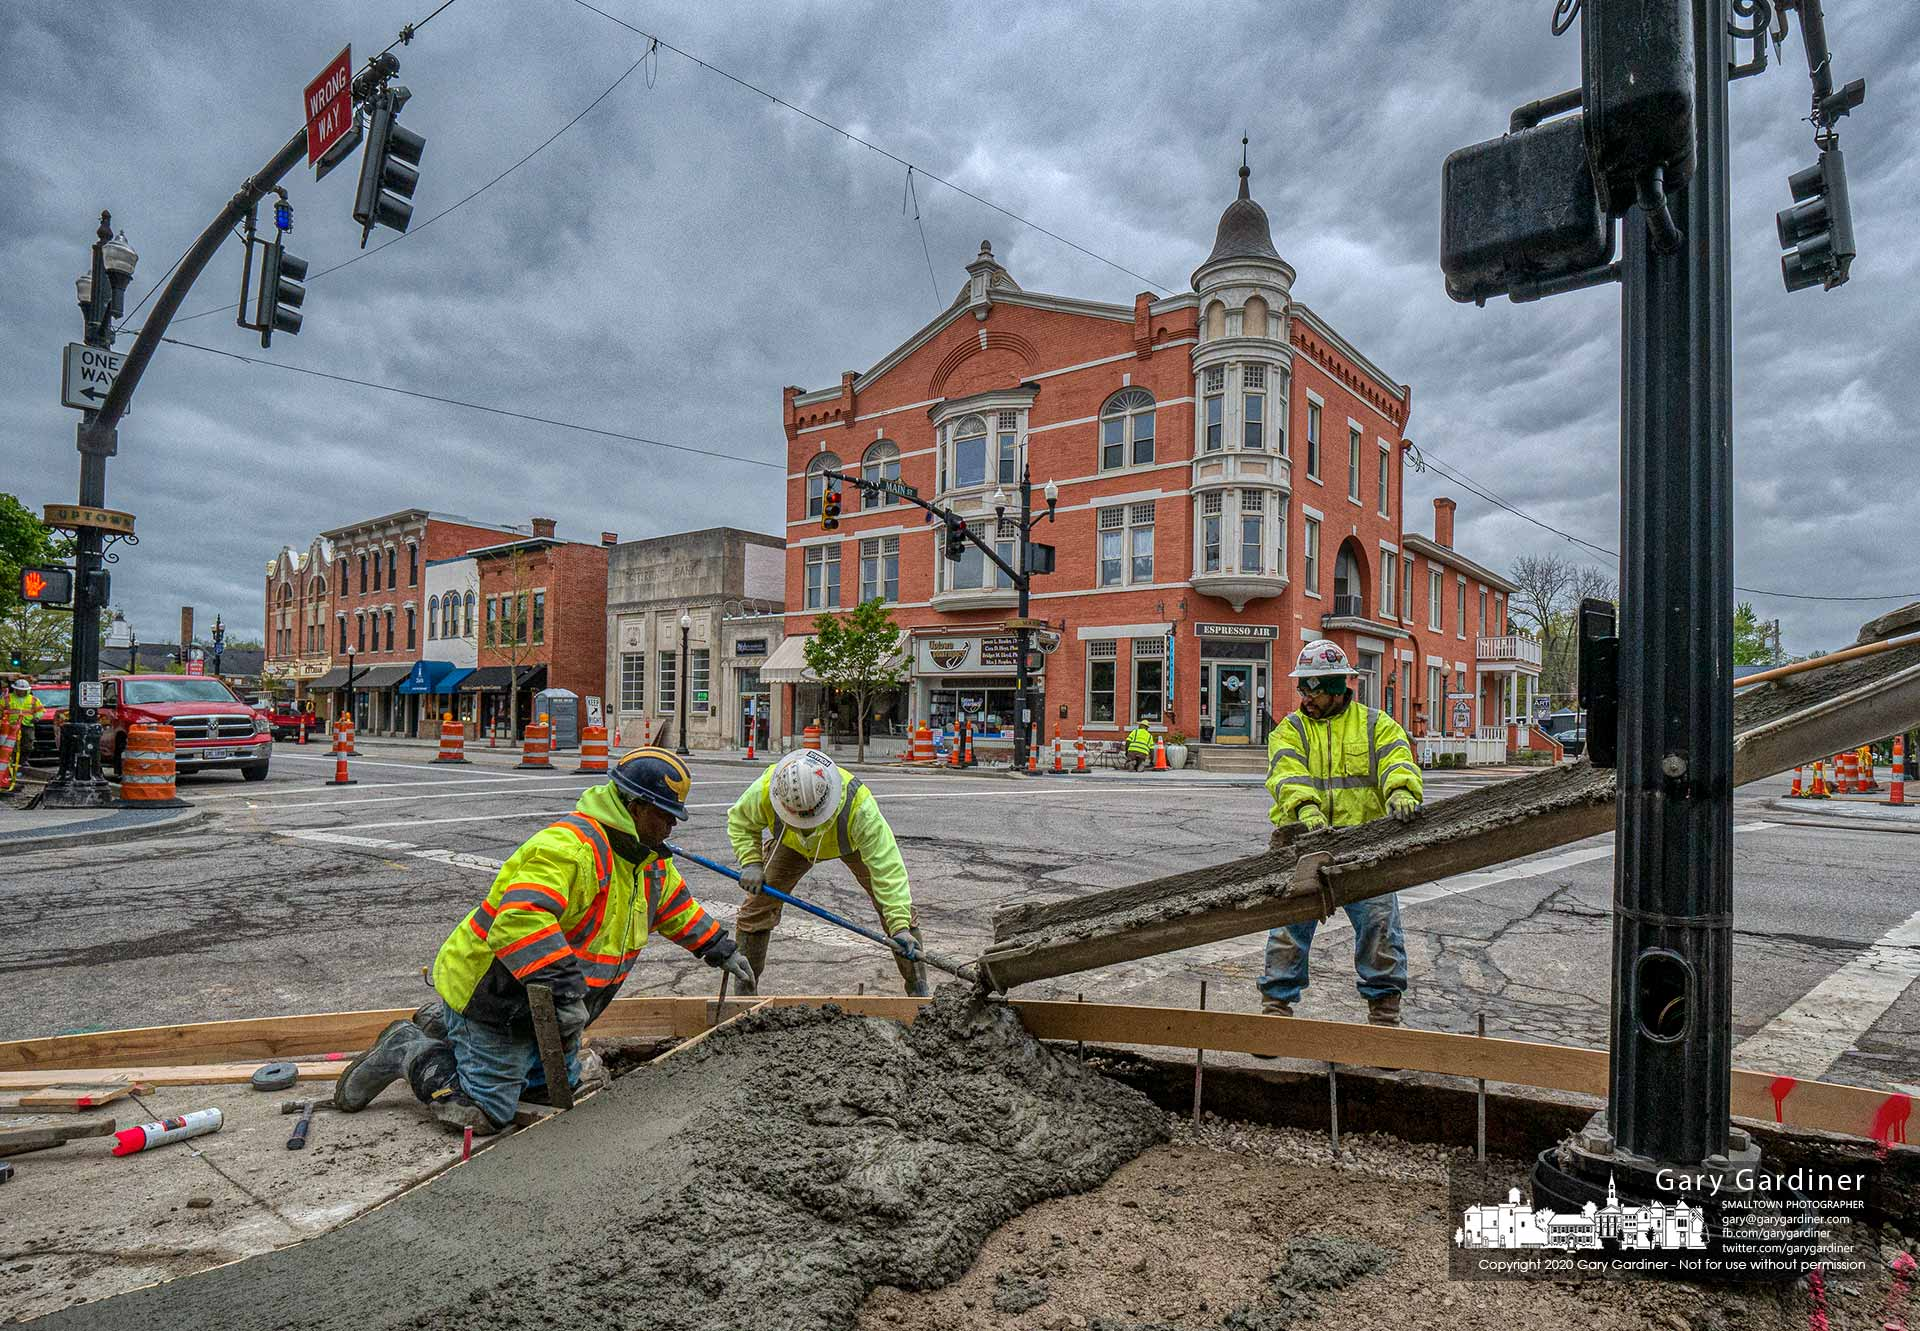 A construction crew pours concrete at the corner of East Main and State Streets completing a large portion of the new sidewalks in Uptown just in time for the reopening of some businesses closed during the pandemic. My Final Photo for May 11, 2020.